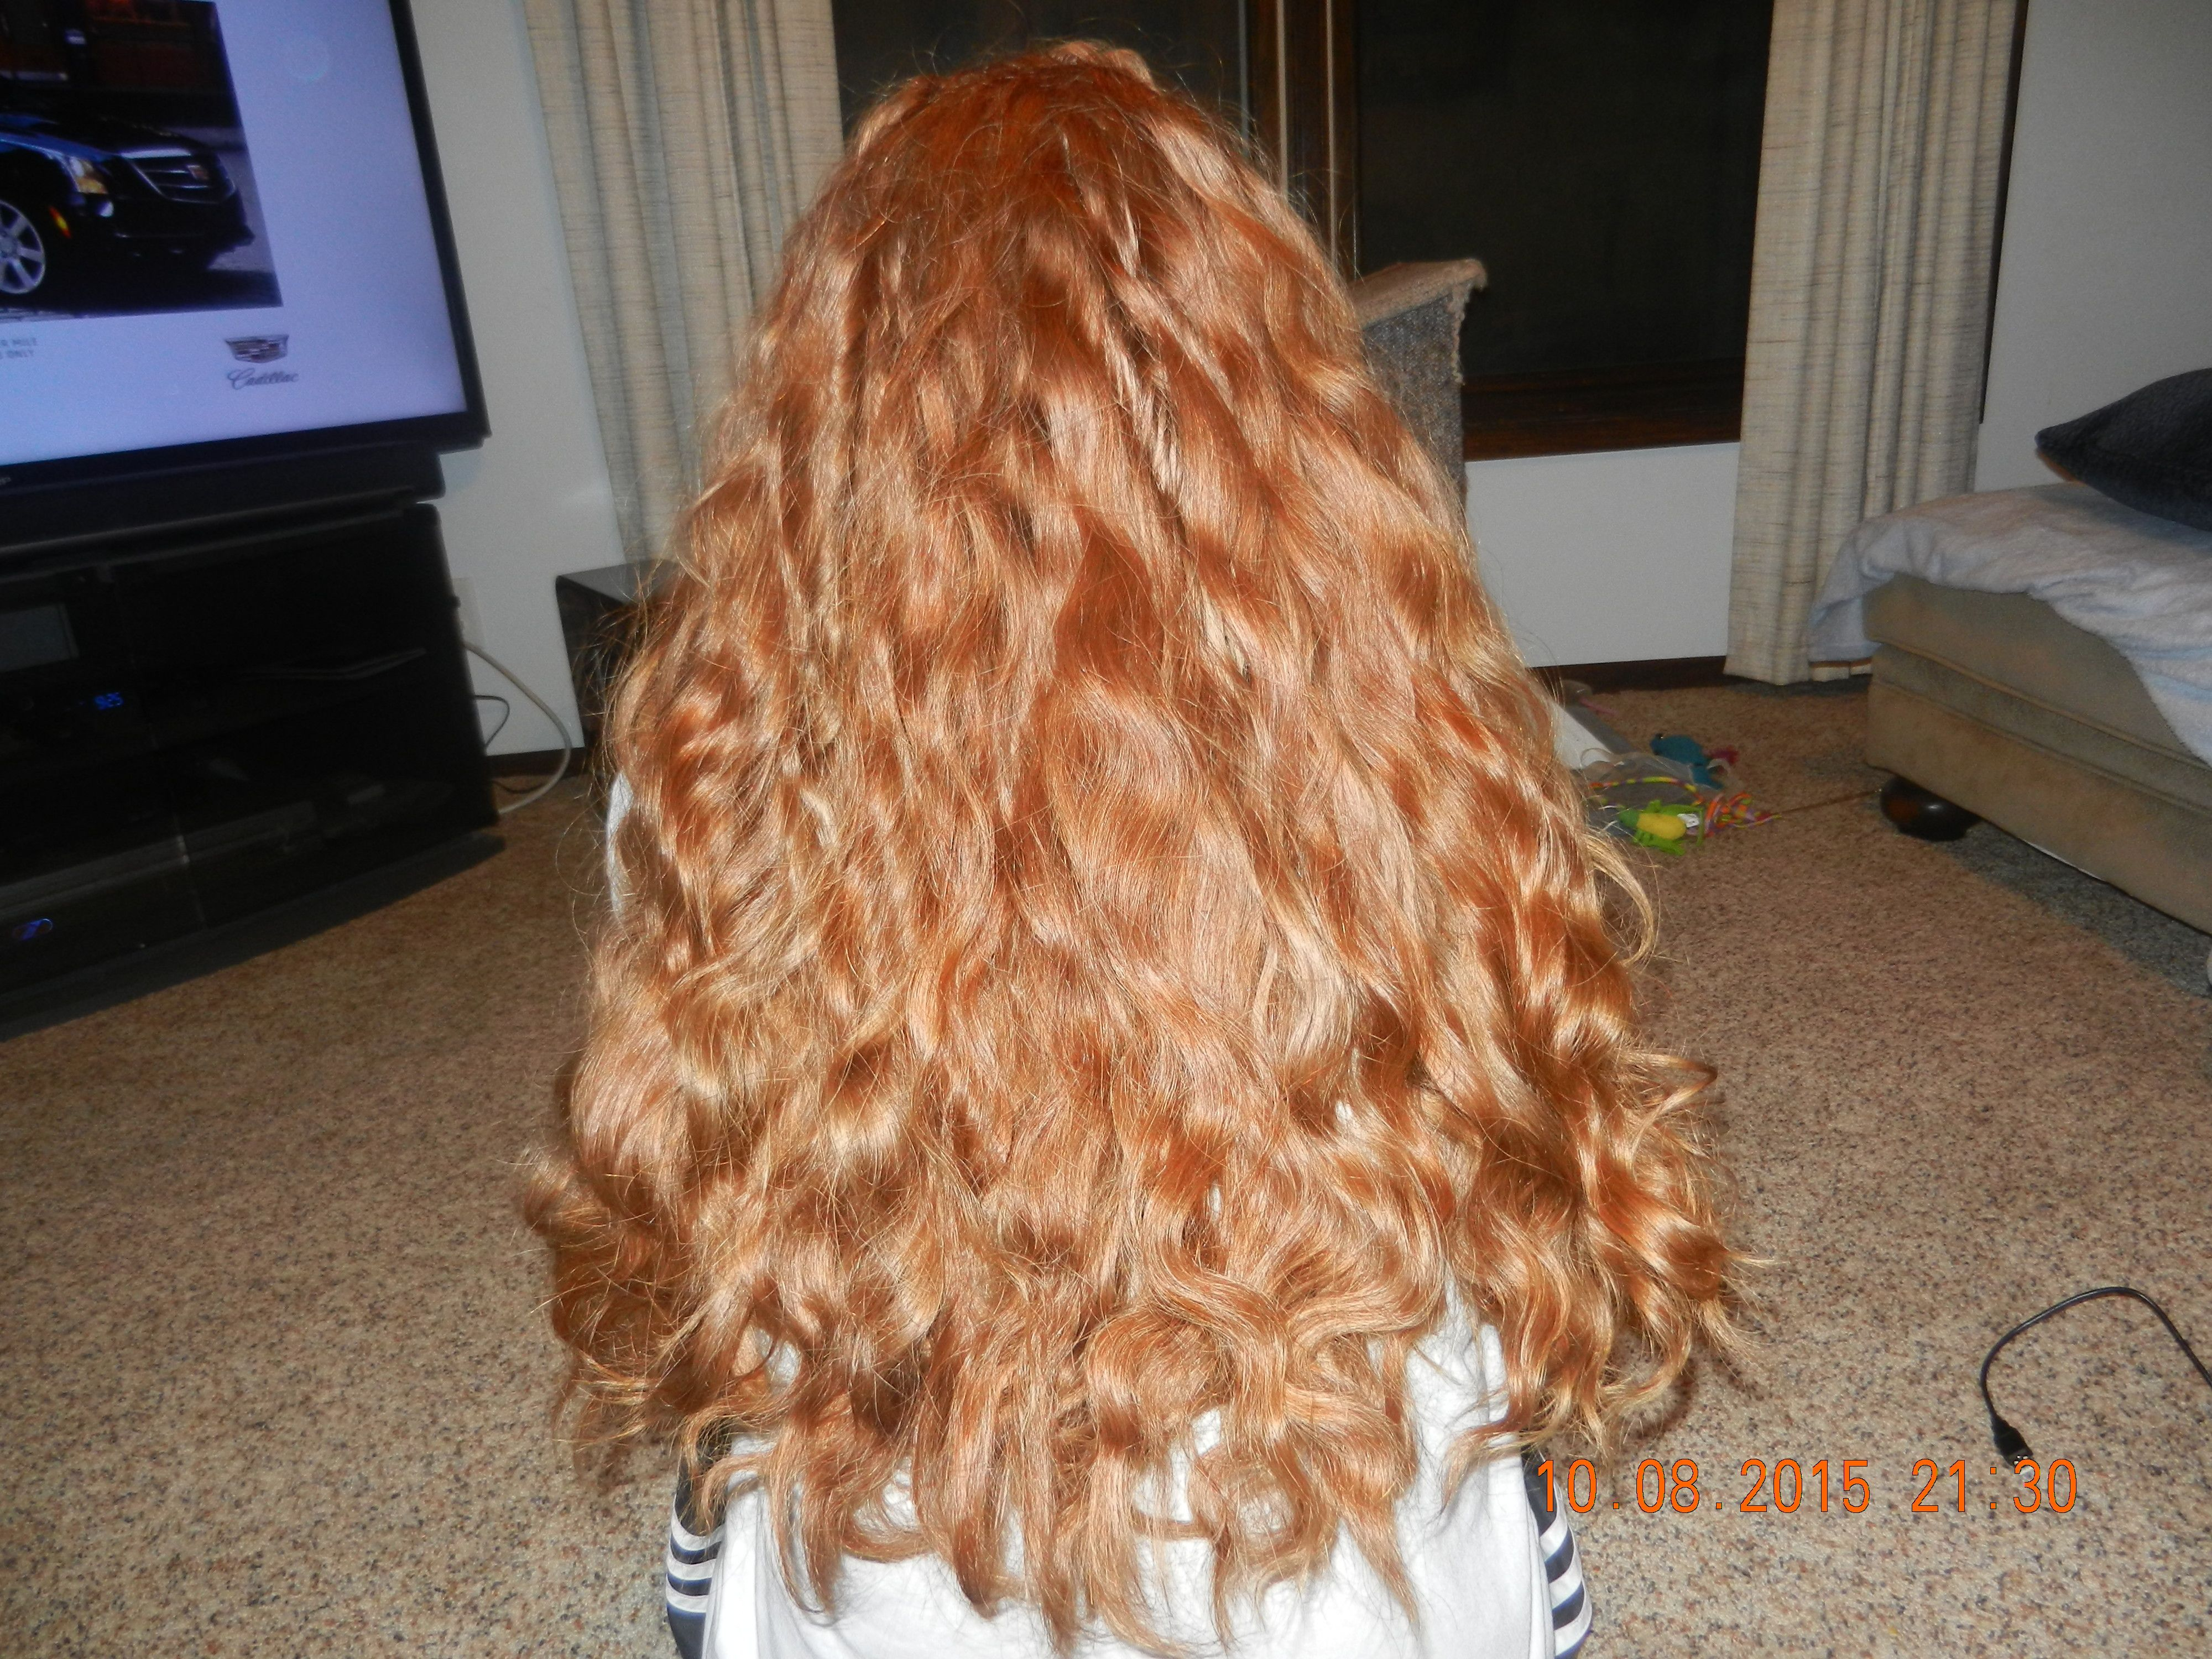 My Hair After French Braid Was Taken Out Hair Styles Long Hair